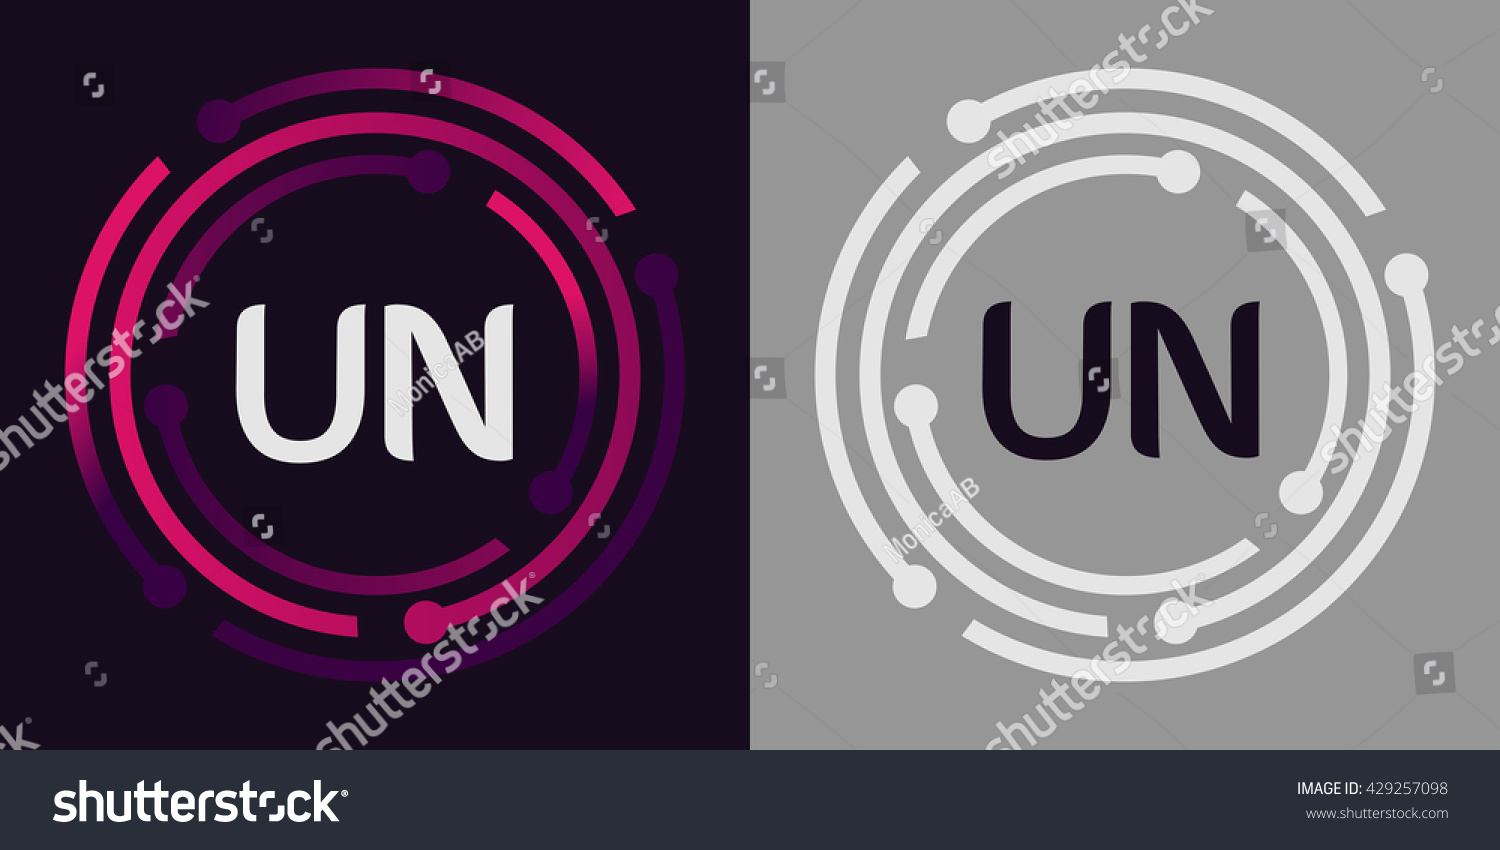 Un letters business logo icon design stock vector 429257098 un letters business logo icon design stock vector 429257098 shutterstock spiritdancerdesigns Choice Image